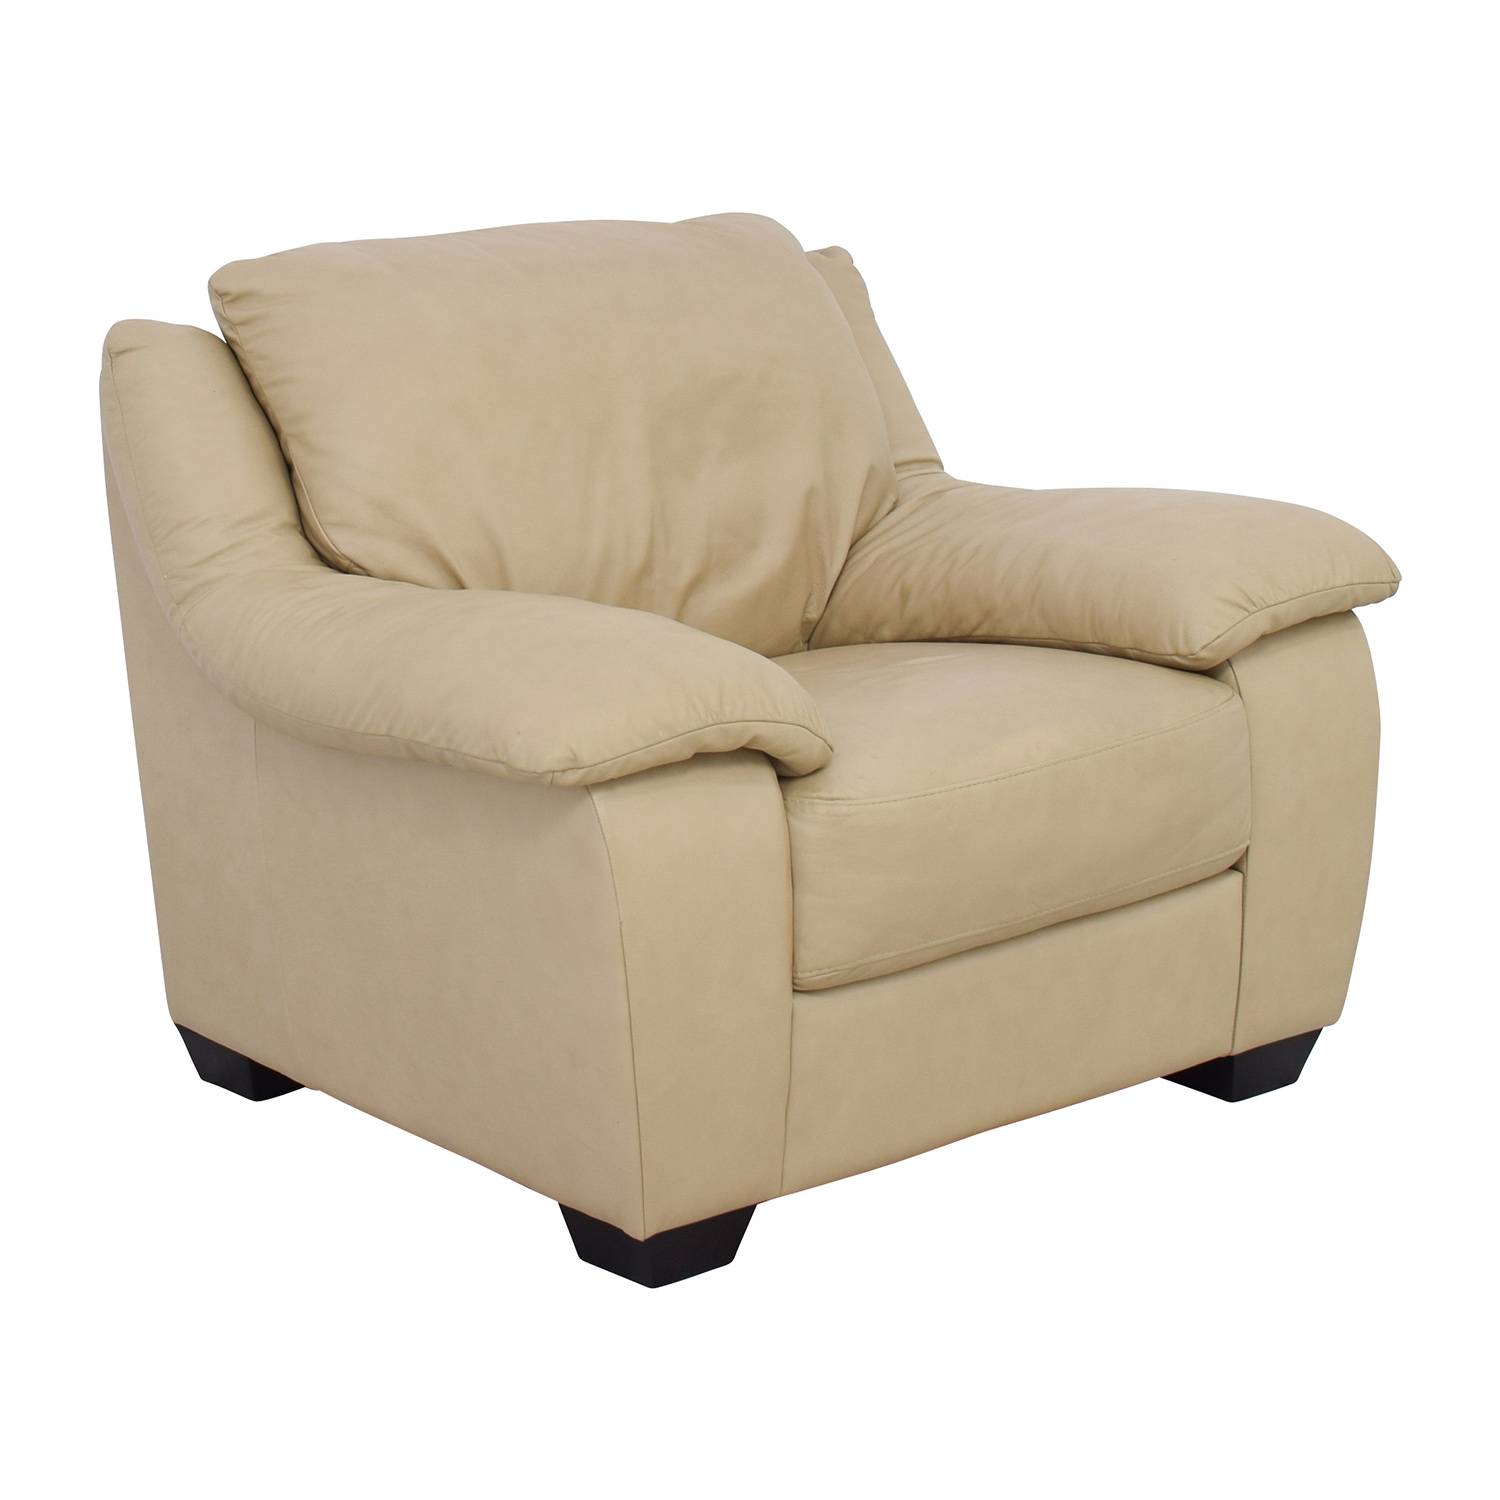 Leather Club Chair 86 Off Natuzzi Italsofa Natuzzi Italsofa Beige Leather